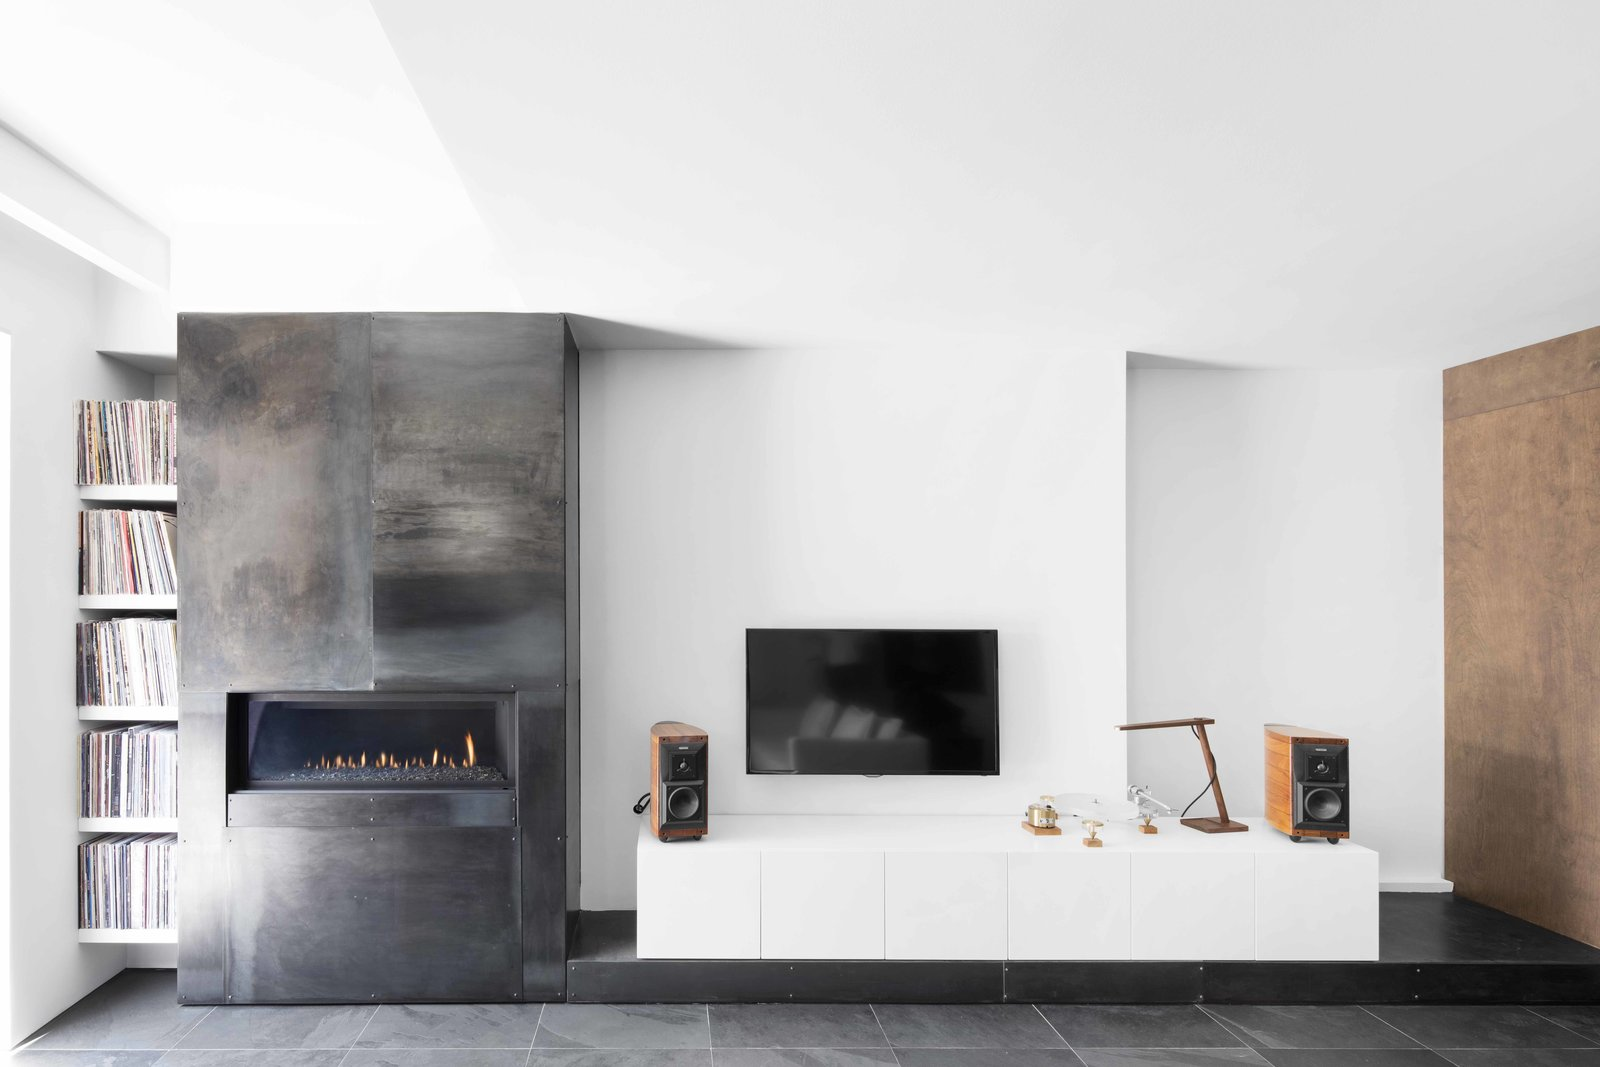 Living Room, Gas Burning Fireplace, and Slate Floor The communication between interior and exterior is unmistakable. The polished steel that surrounds the fireplace and the concrete floor's dark finish recall the home's exterior, while the contrasting stark white walls create a visual language as striking as the building's black facade.  Photo 3 of 7 in A Monochromatic Renovation for a 19th-Century Montreal Home